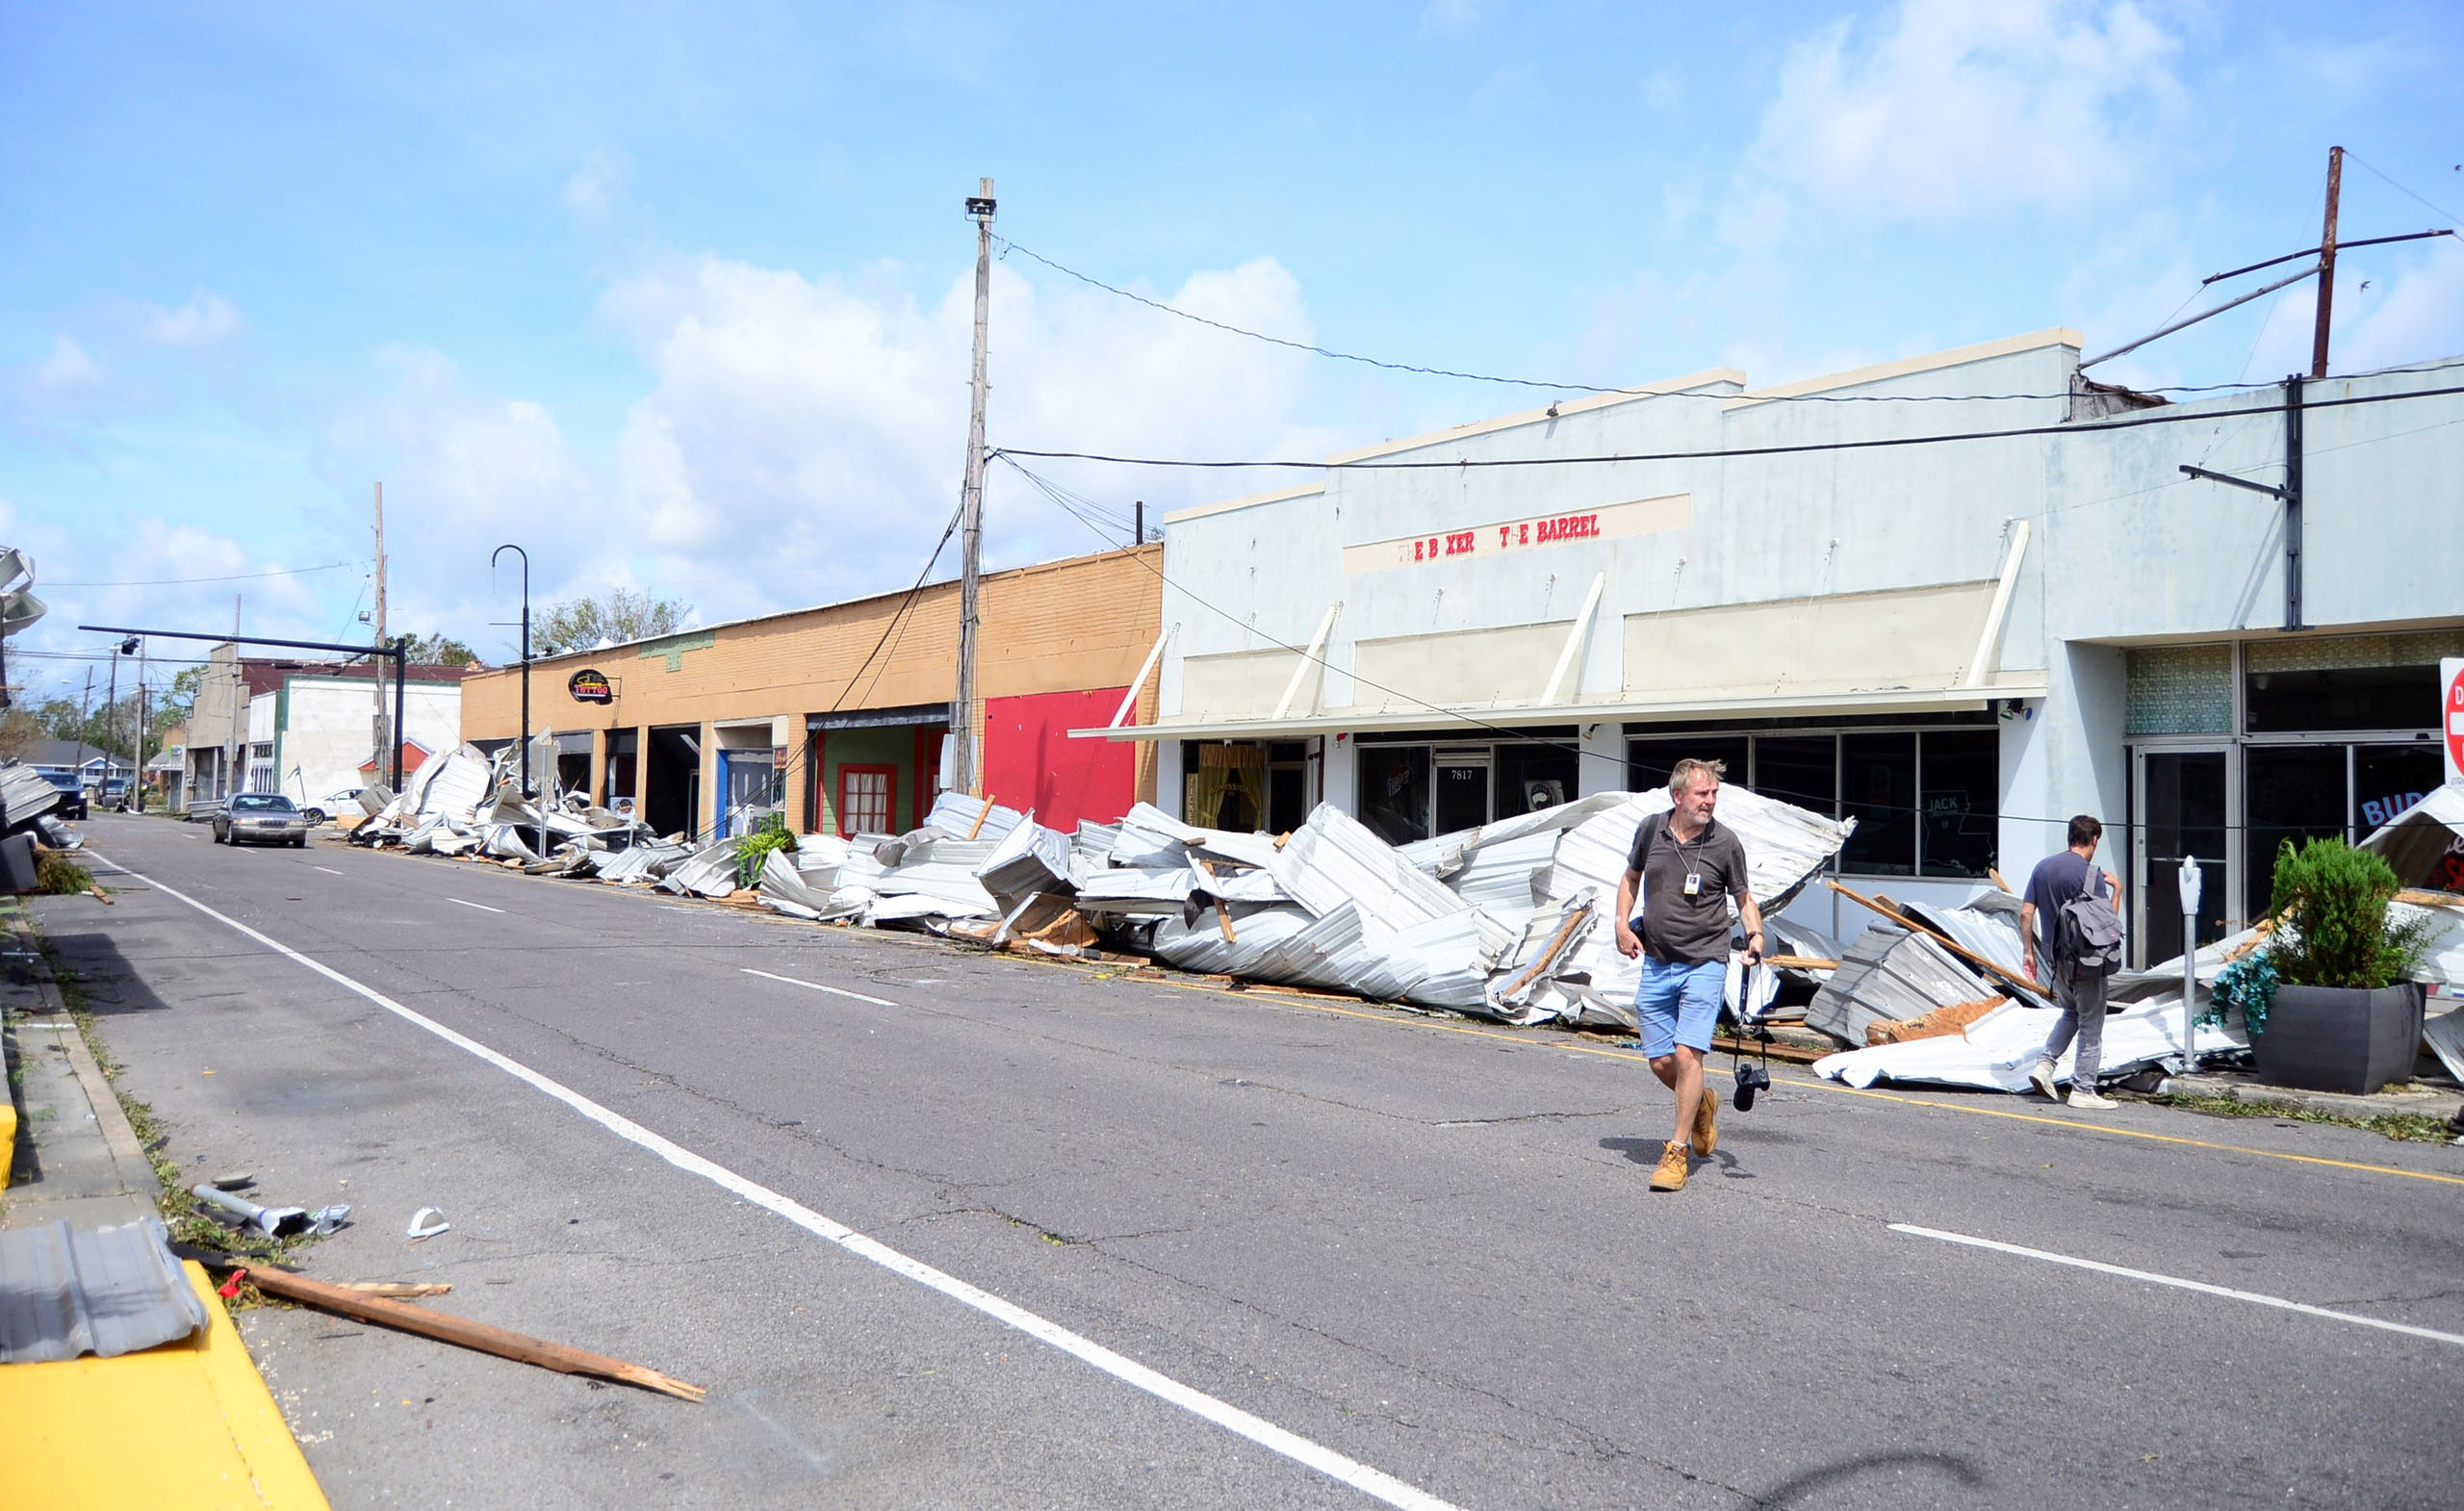 Debris is seen along the streets of Houma's downtown area on Monday, Aug. 20, 2021.